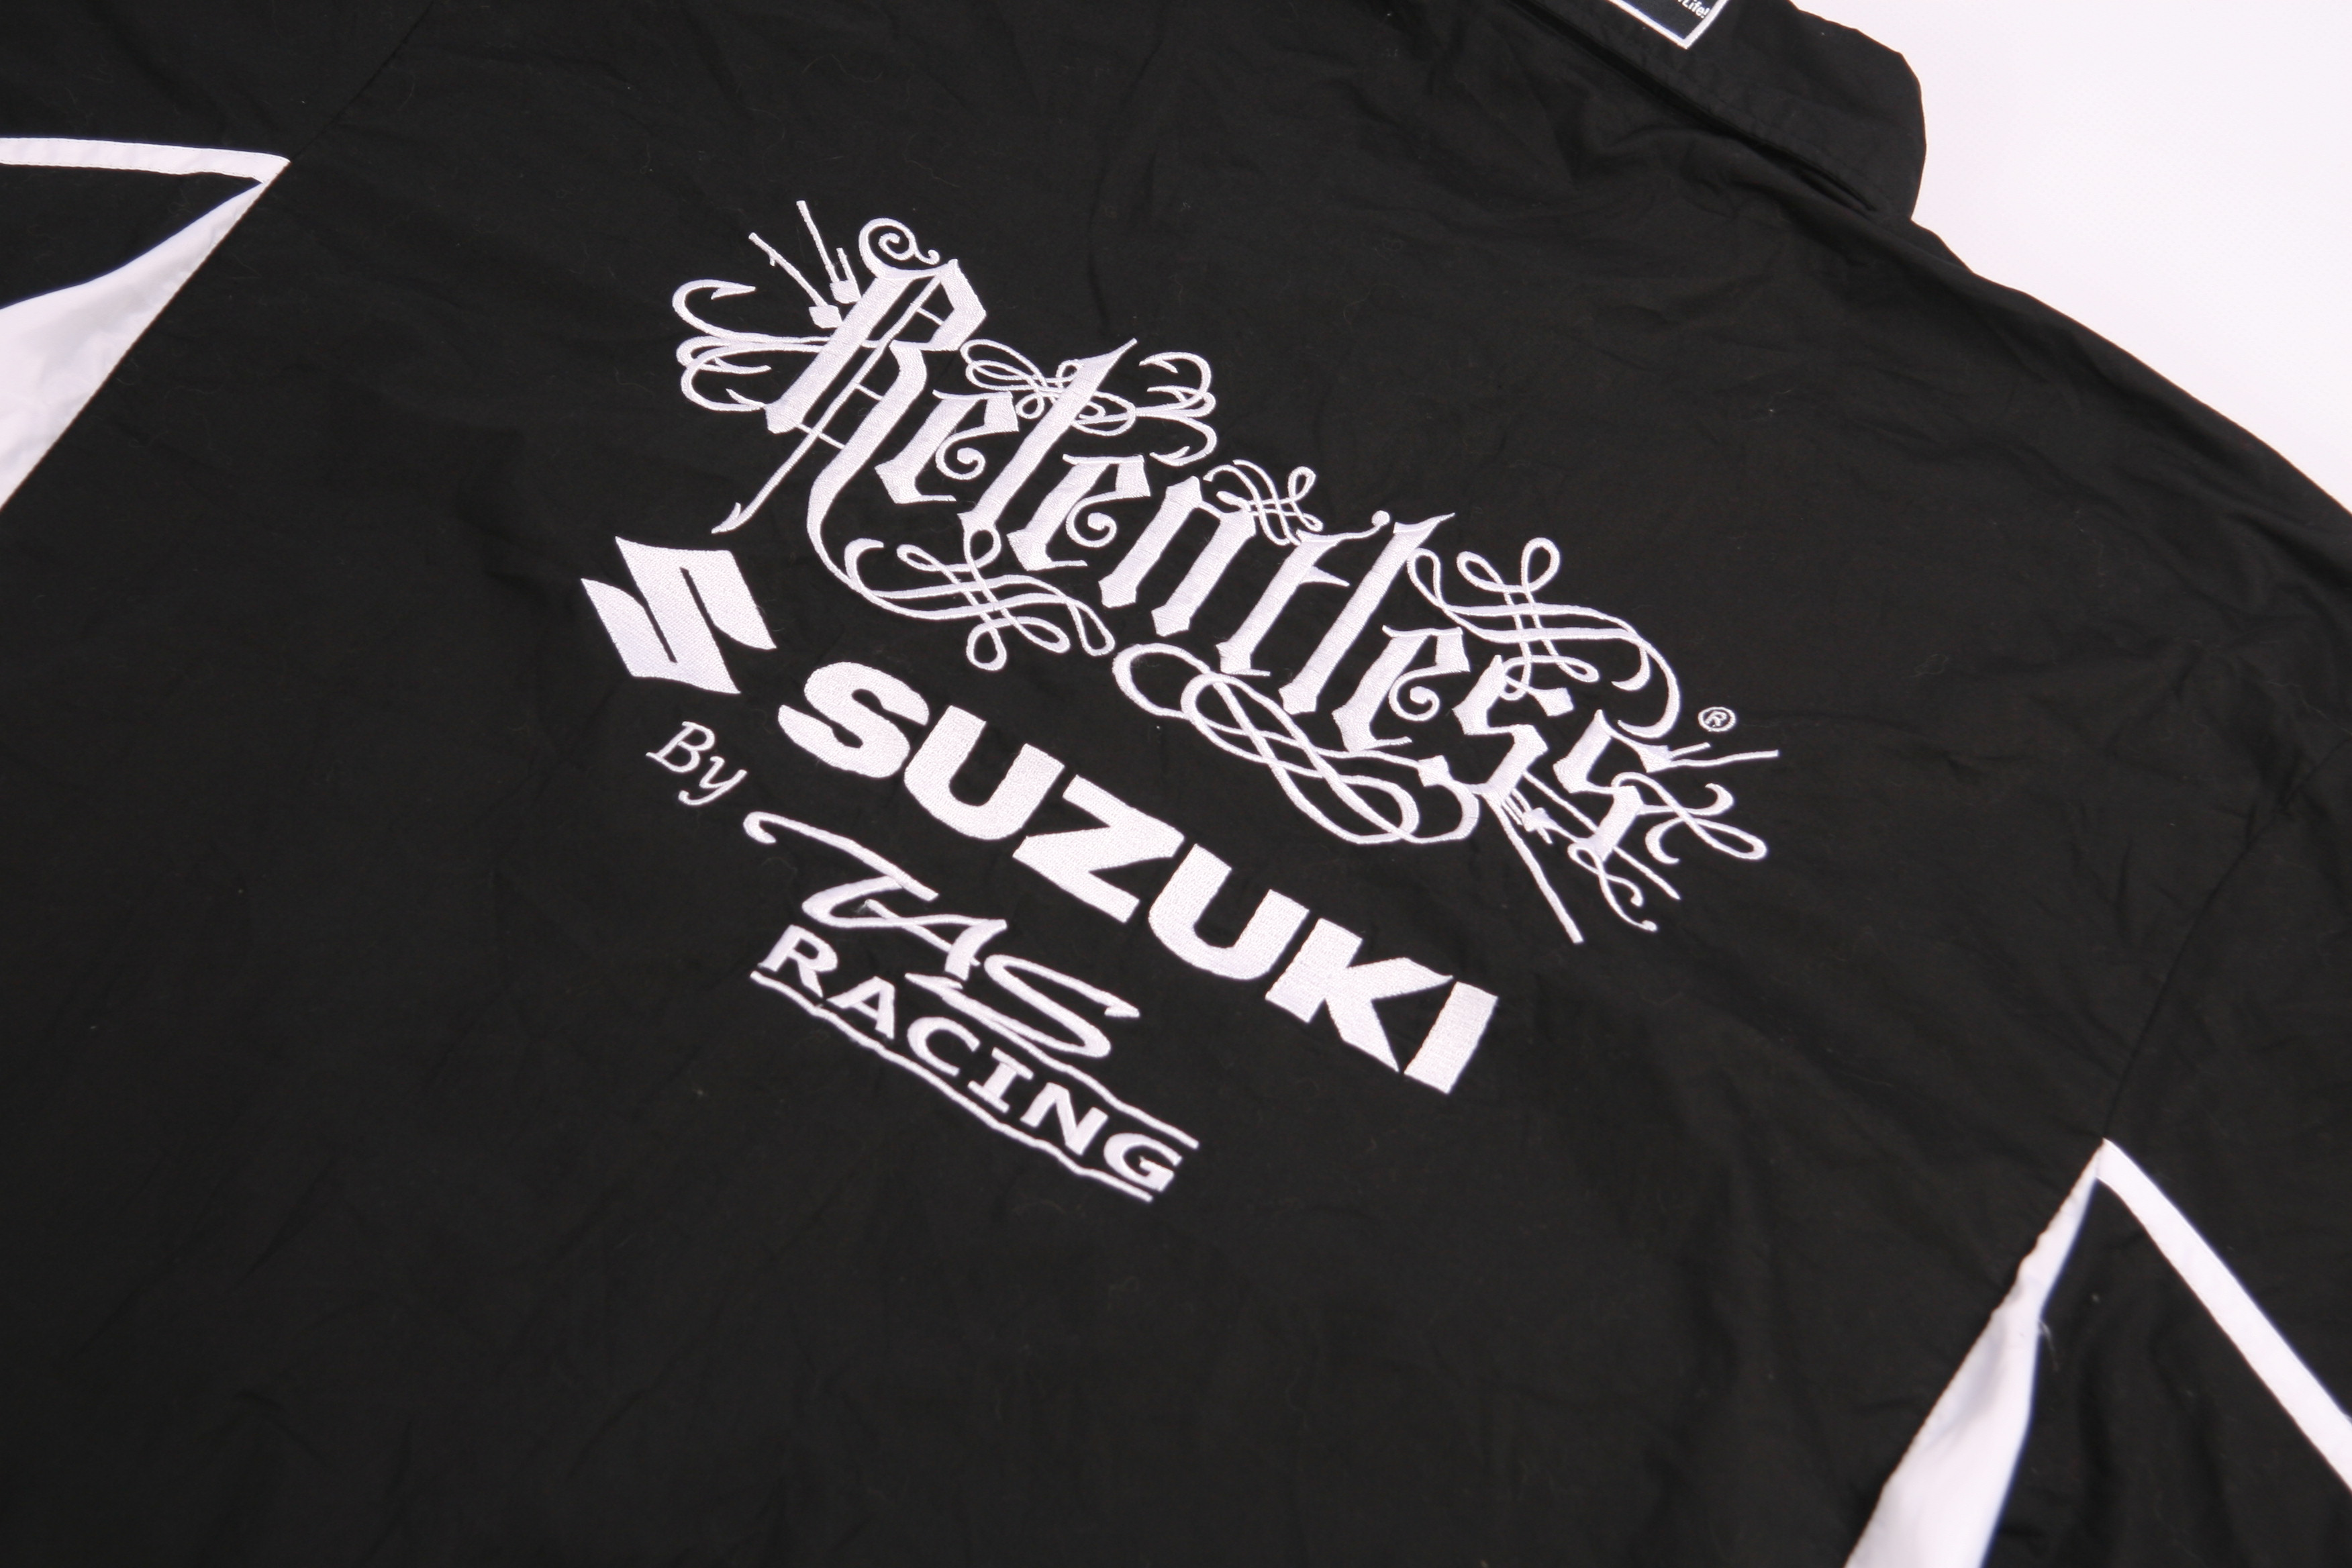 Vintage Relentless Suzuki Team Vntg Racing Embroidered Logo Shirt Grailed